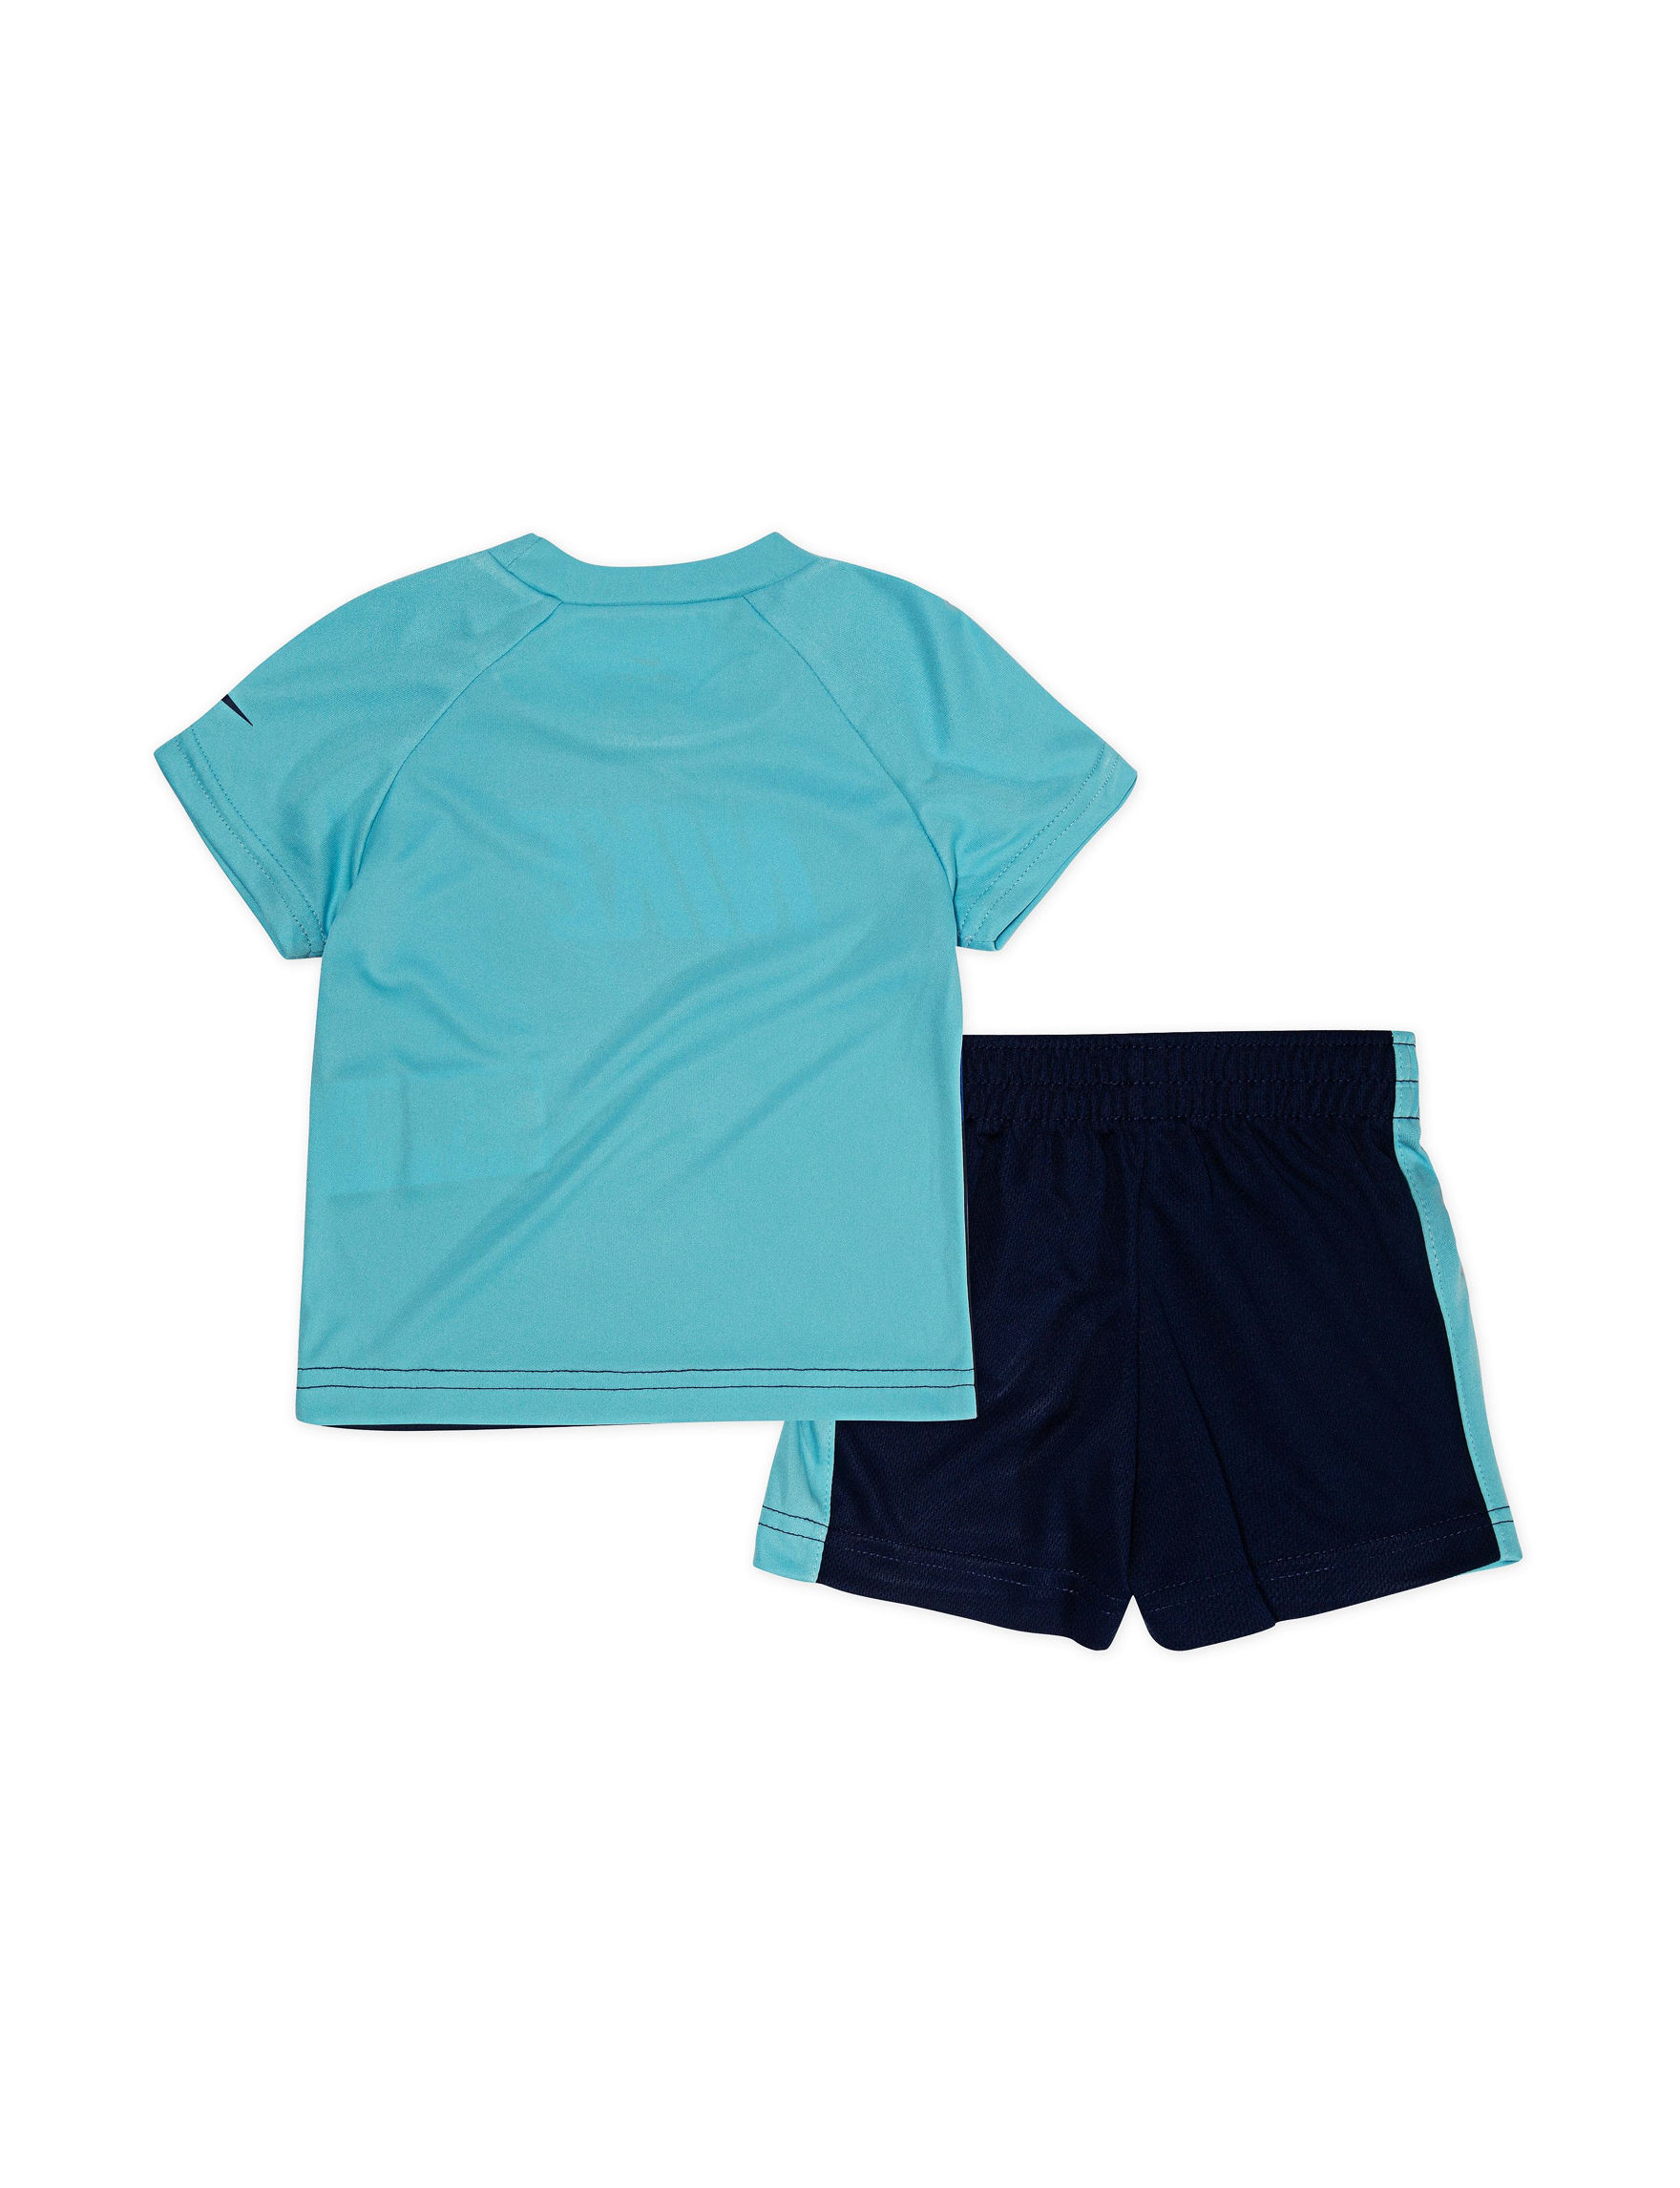 916f855167325 Nike 2-pc. Dri-FIT Dominate Raglan T-shirt & Shorts Set - Baby 12-24 Mos. |  Stage Stores